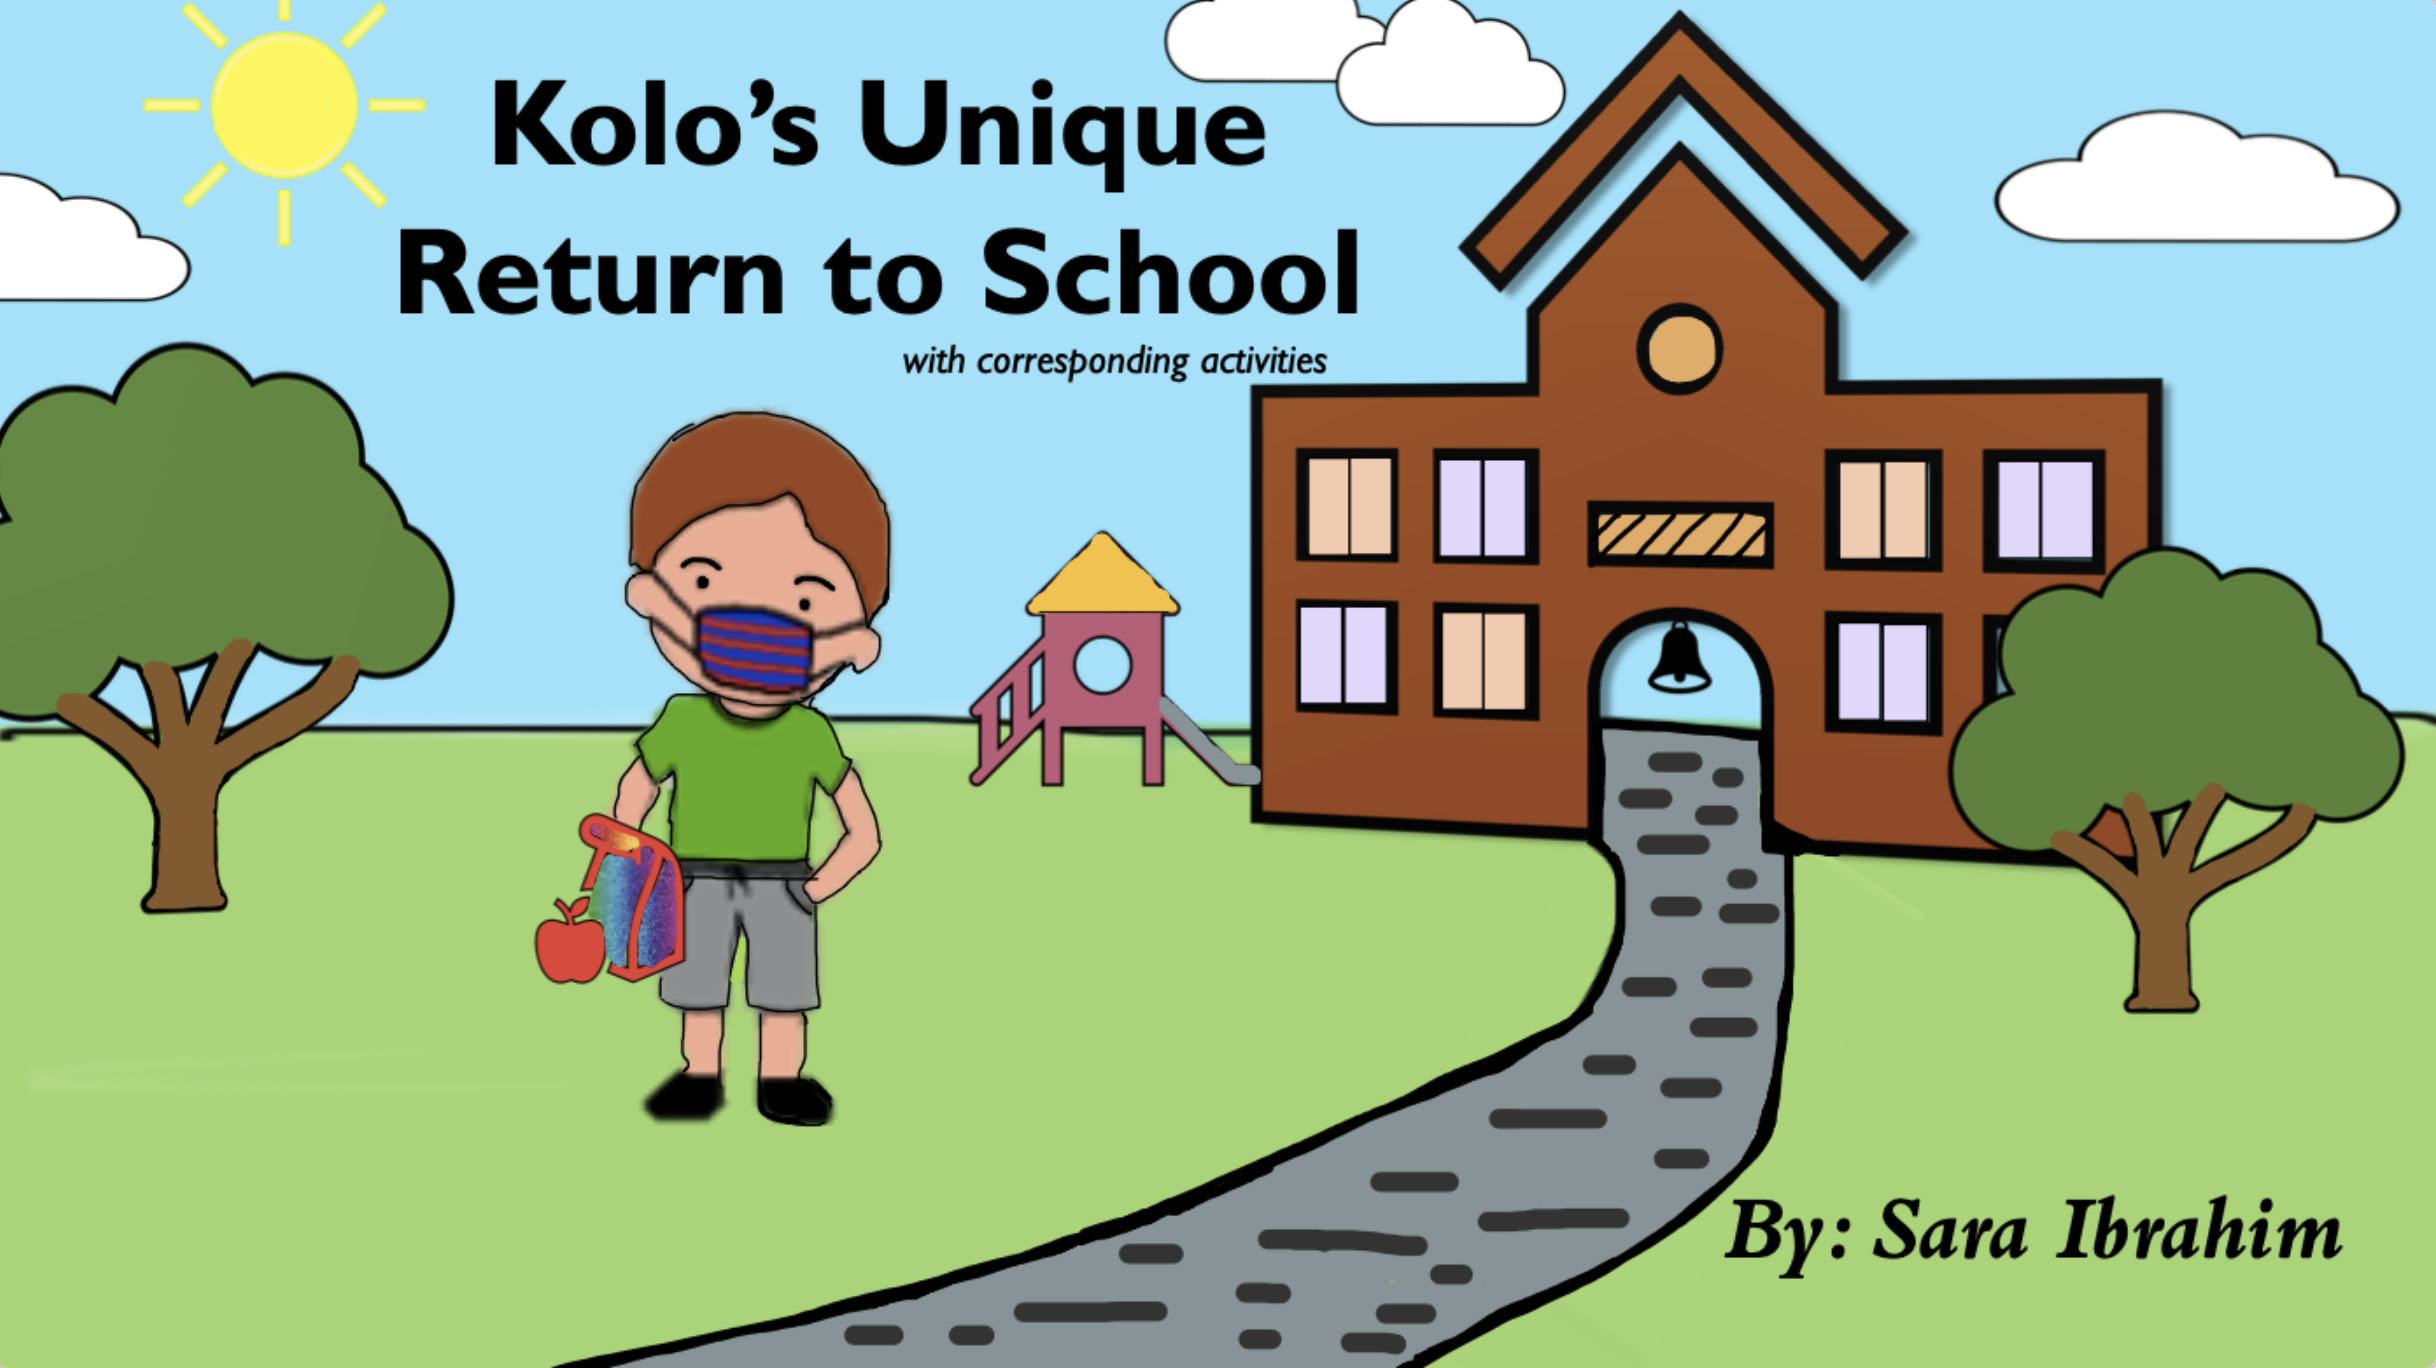 Kolo's Unique Return to School